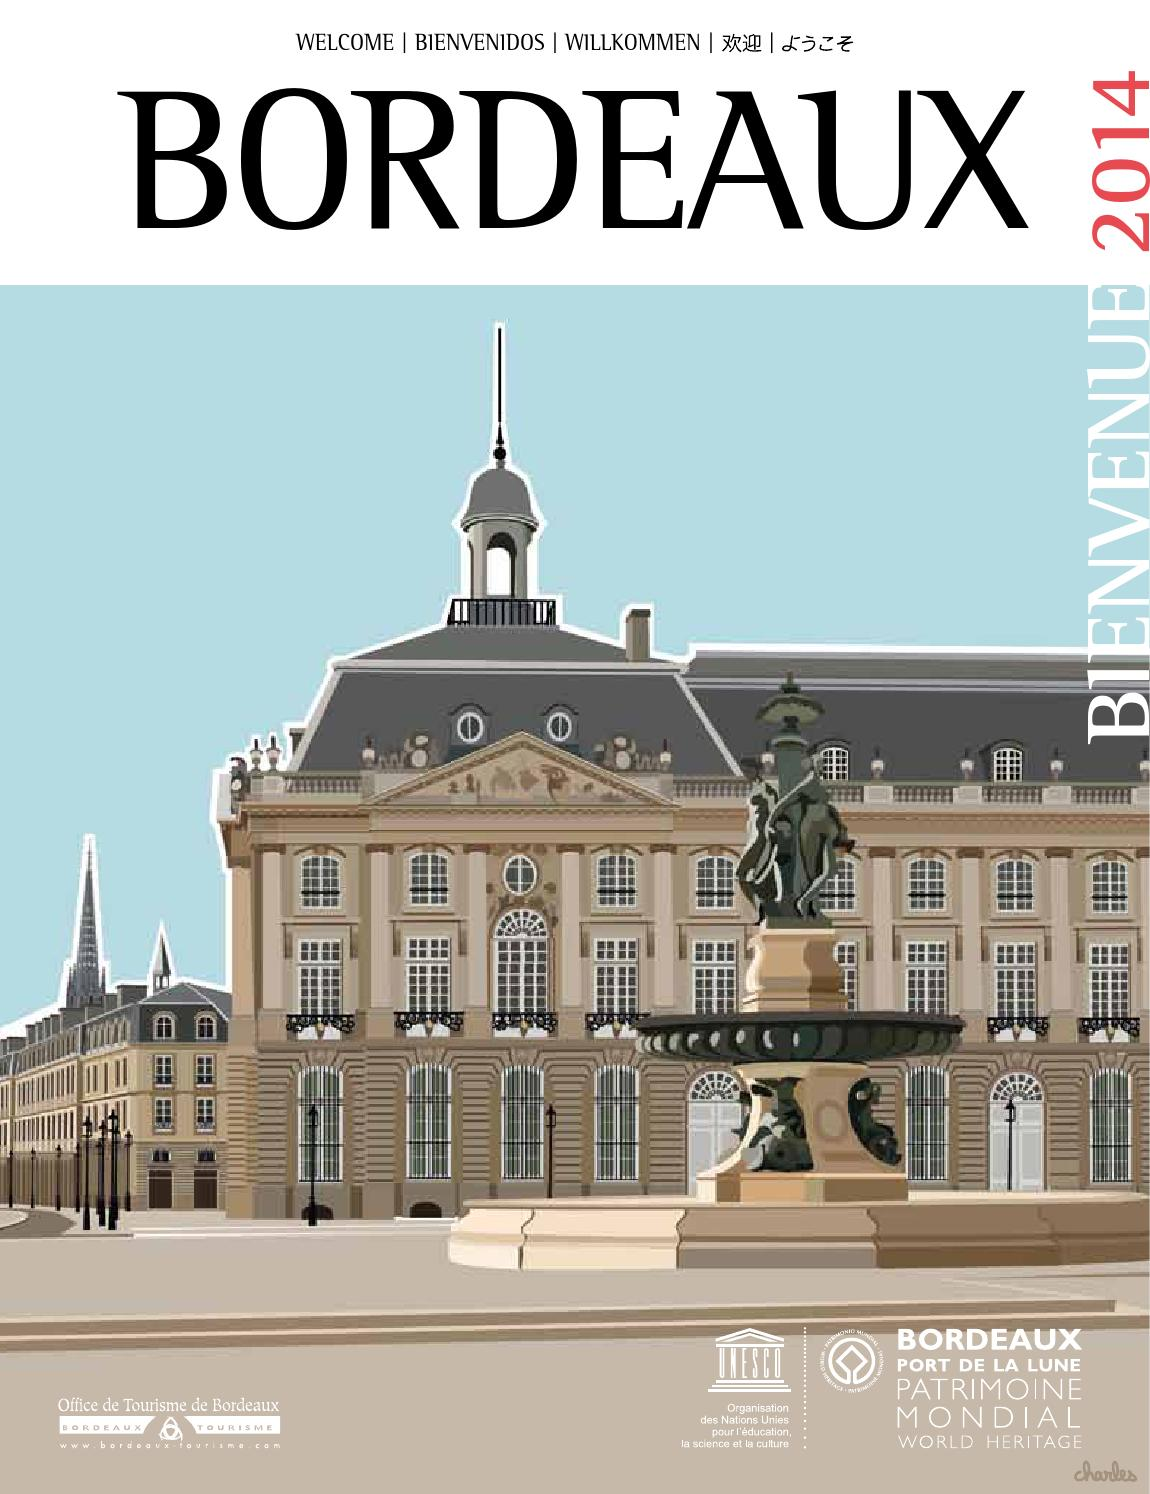 Bordeaux bienvenue 2014 by office de tourisme de bordeaux m tropole issuu - Office du tourisme de bordeaux ...